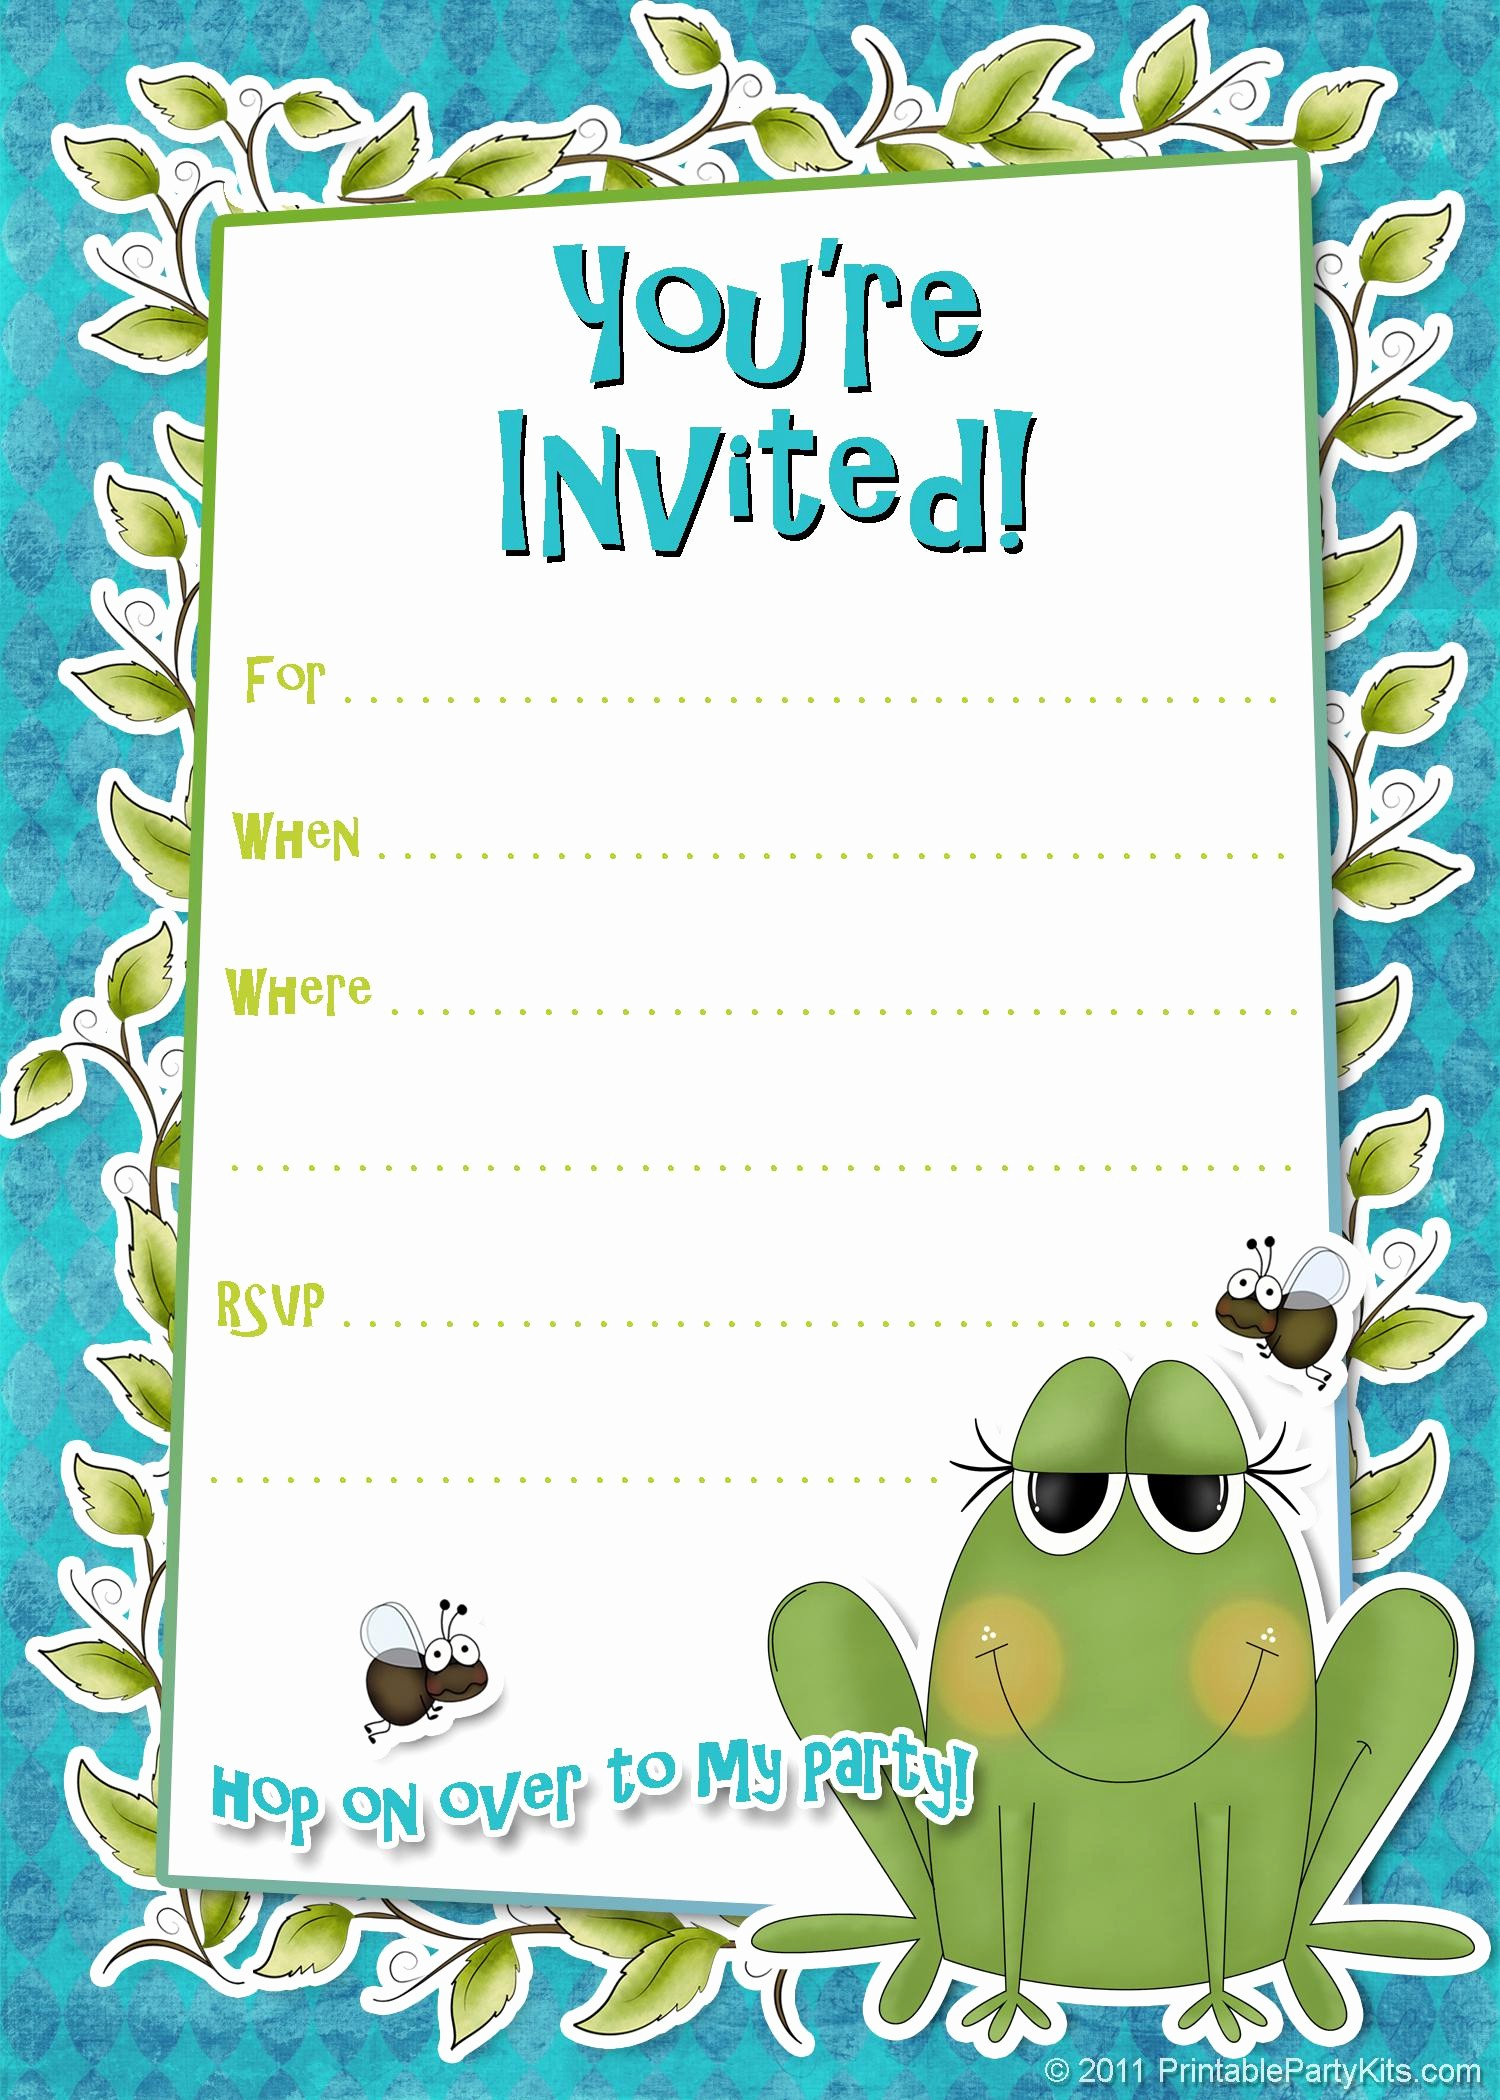 Party Invitation Templates Free Download Fresh Free Printable Party Invitations Templates